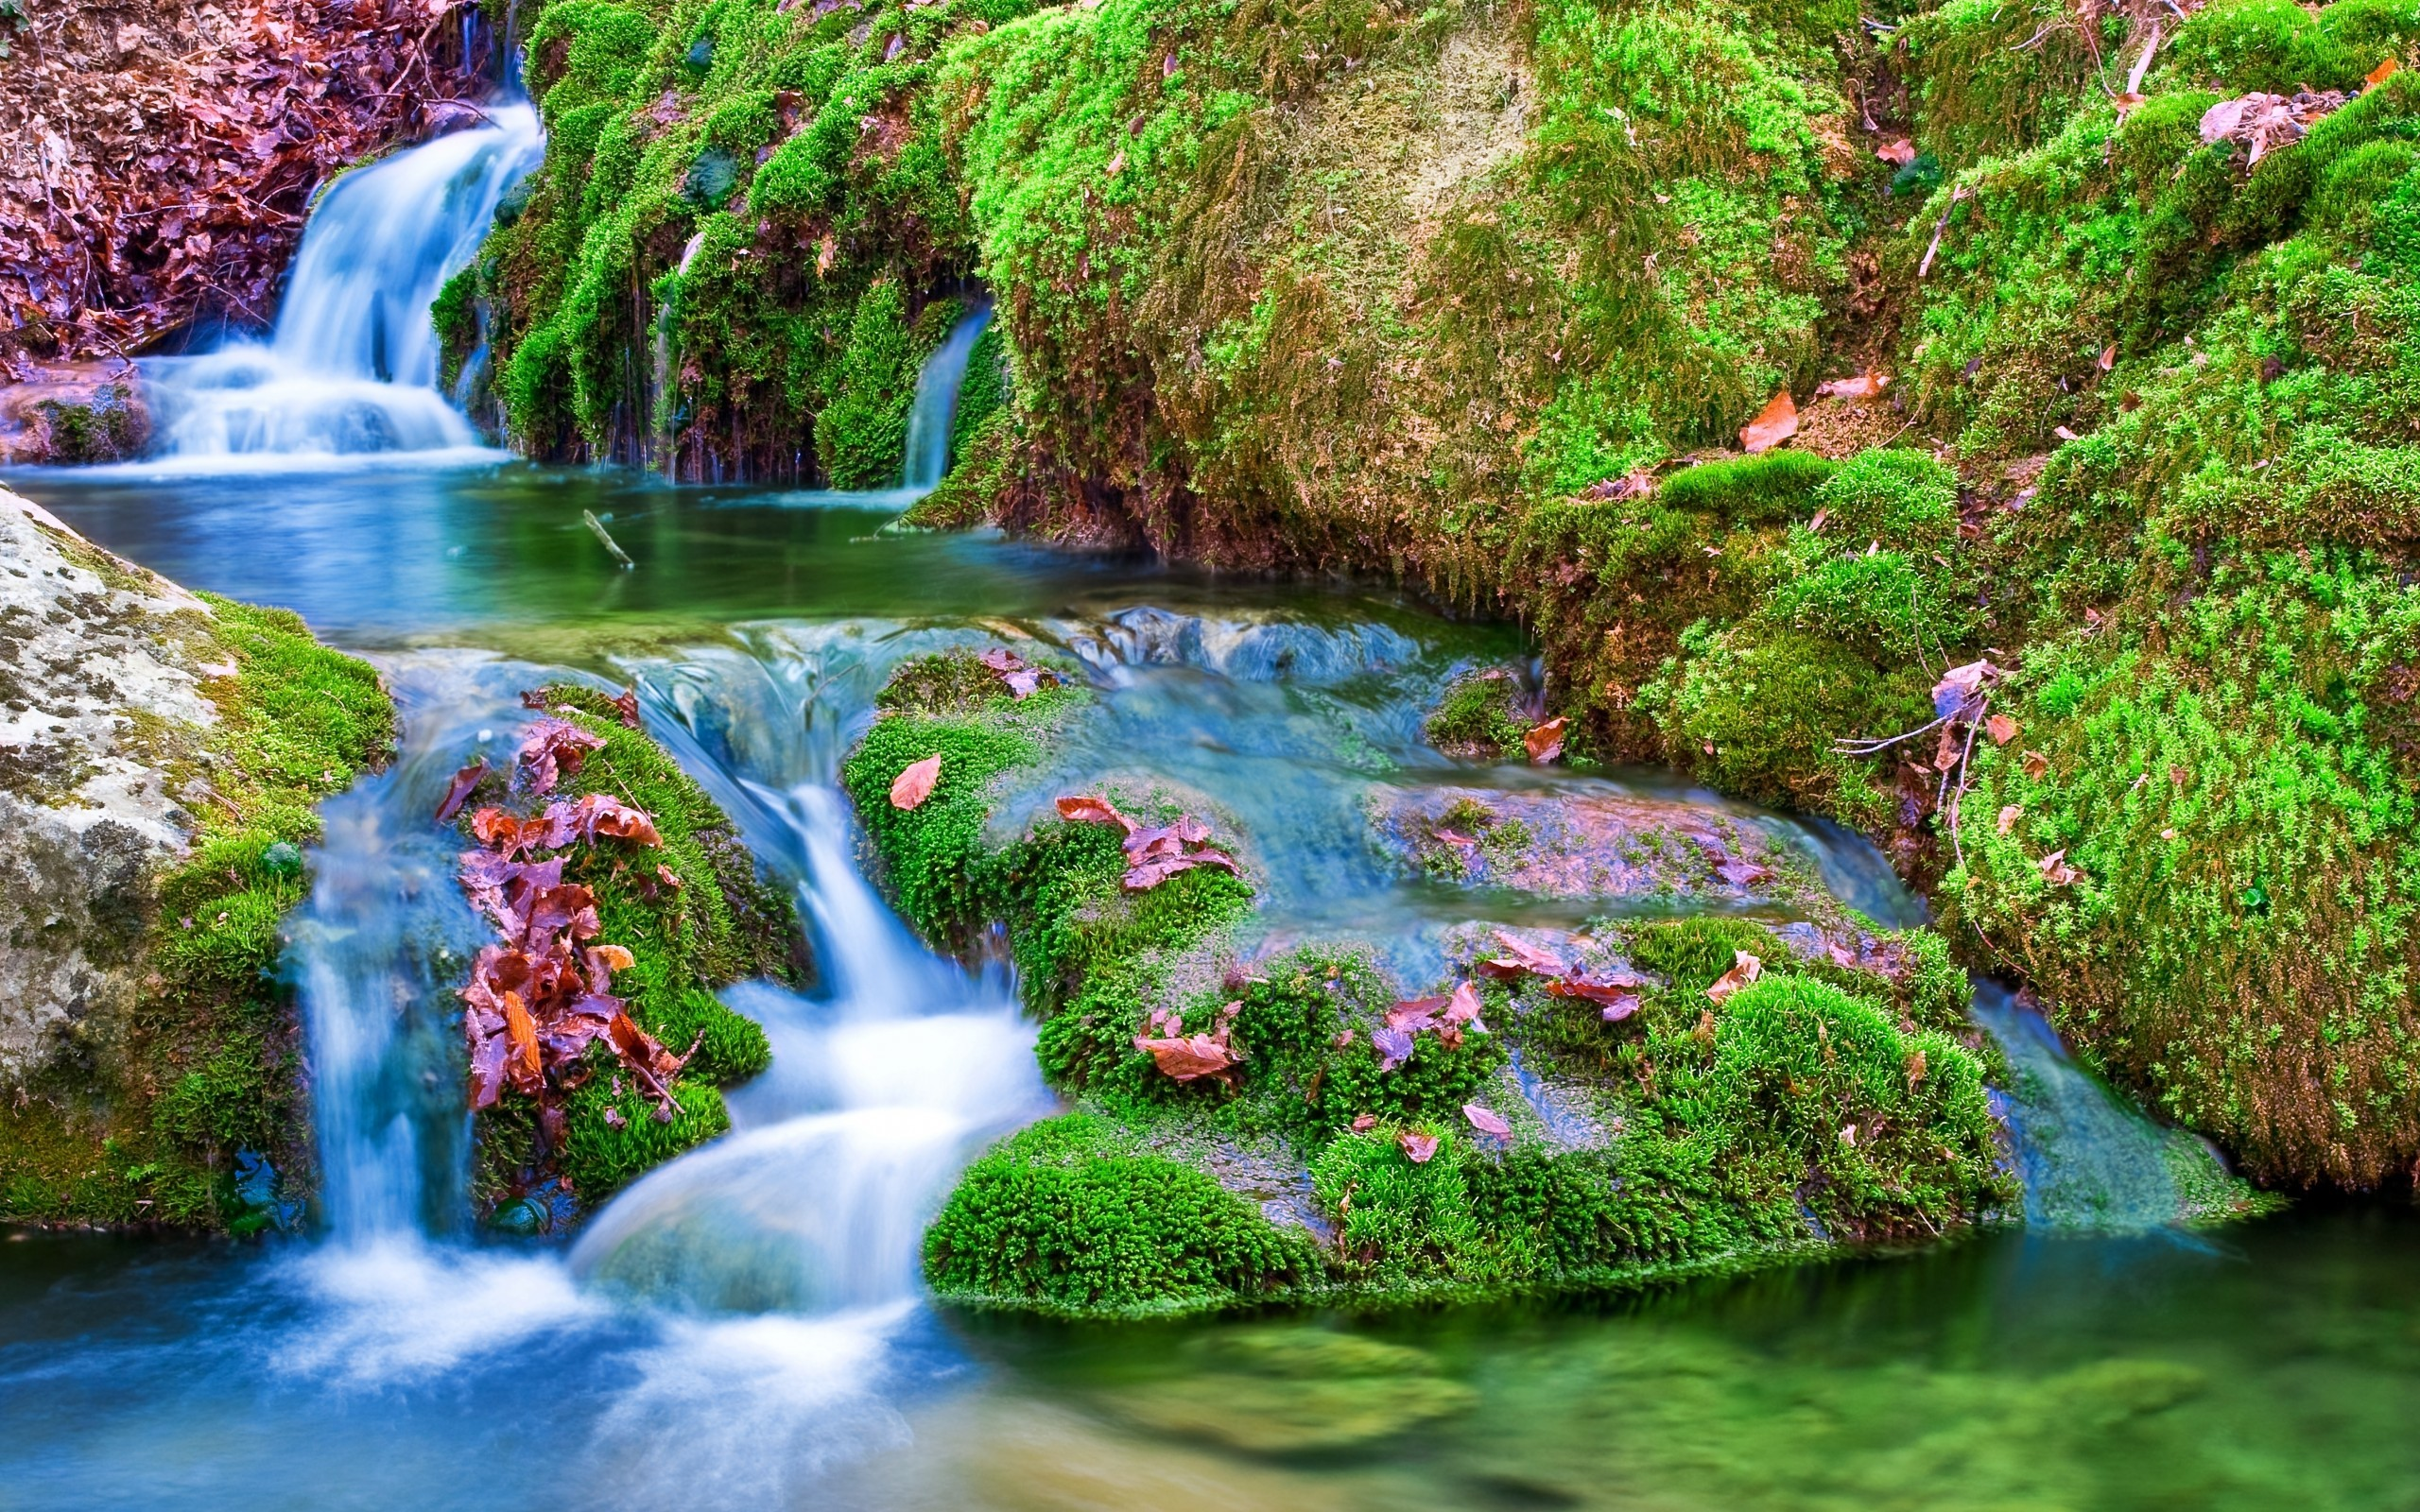 Download Src Waterfall Background Pictures Laptop Nature Waterfall Wallpaper Hd 2560x1600 Wallpaper Teahub Io